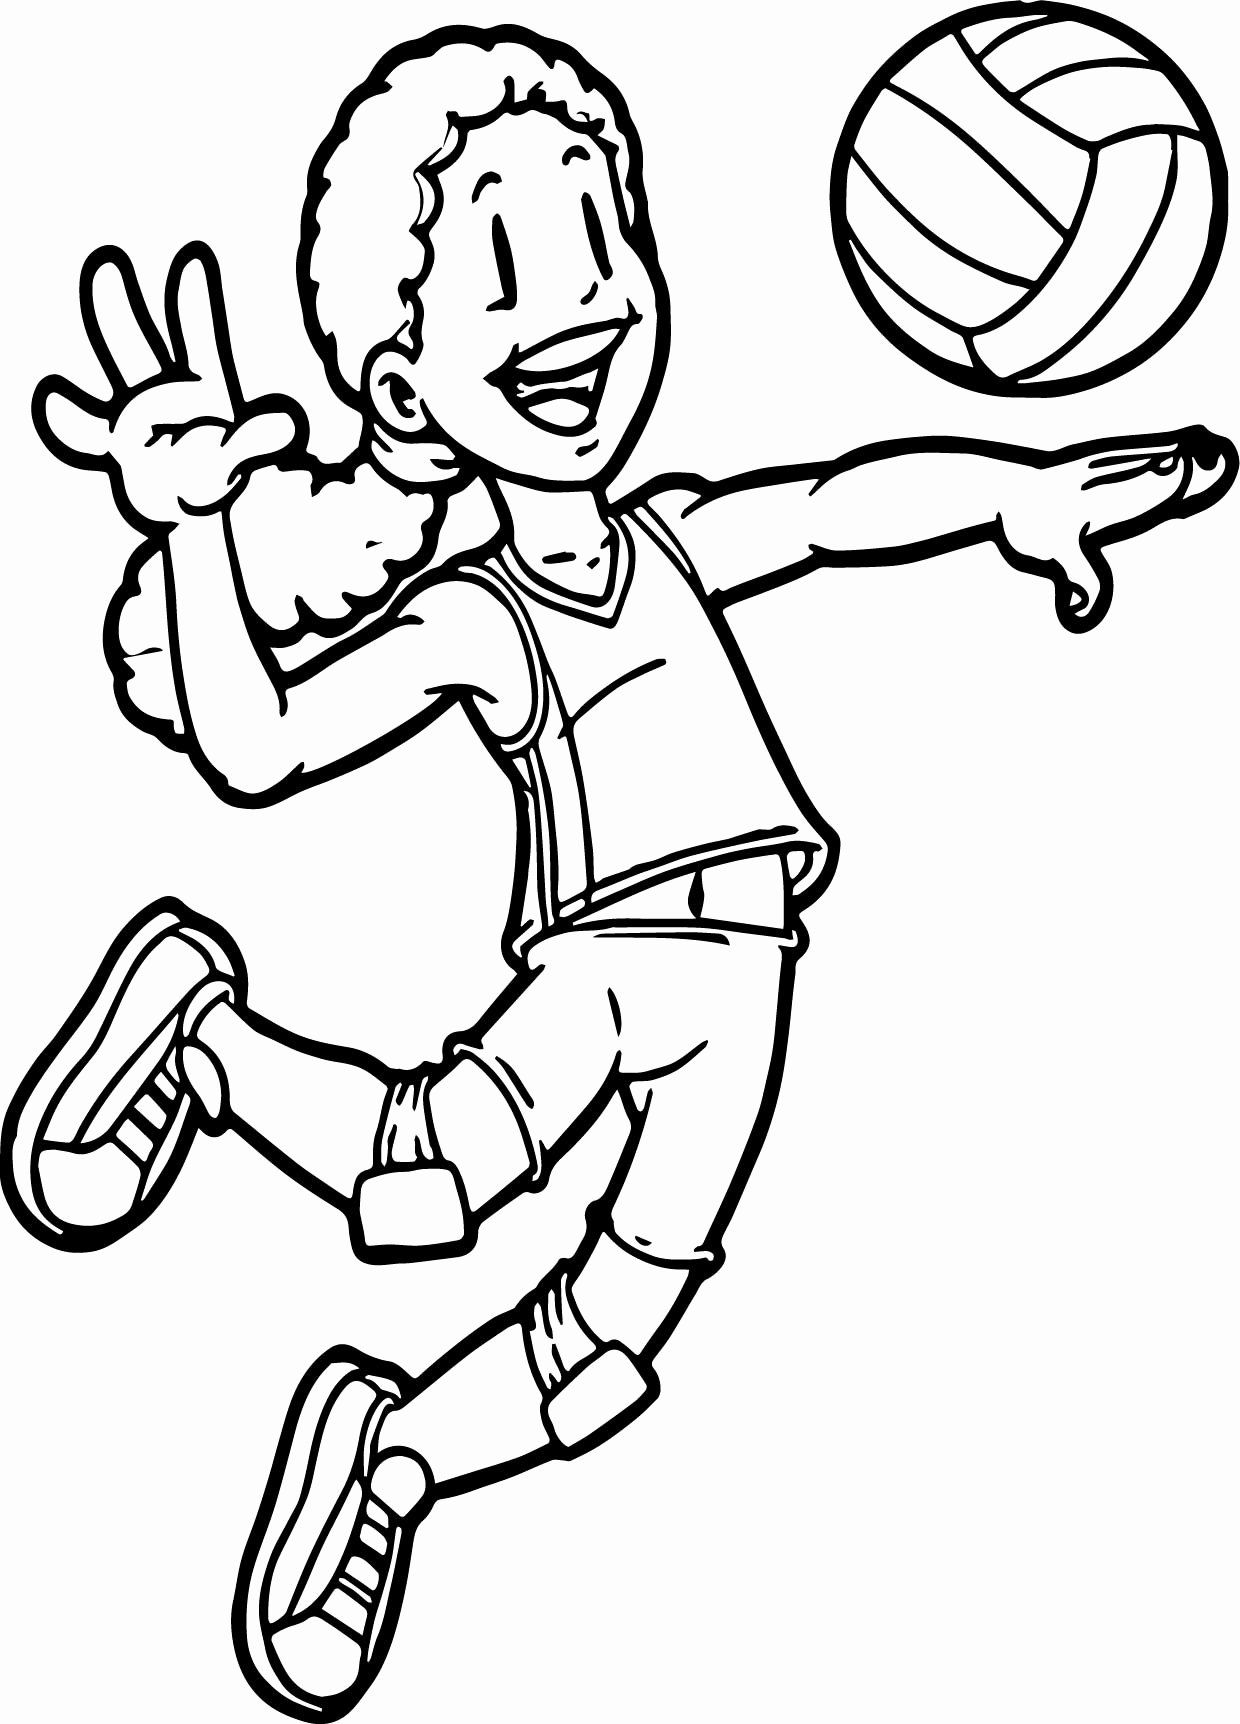 Sports Coloring Pages For Kids Awesome Kids Playing Sports Volleyball Coloring Page In 2020 Sports Coloring Pages Baseball Coloring Pages Kids Playing Sports